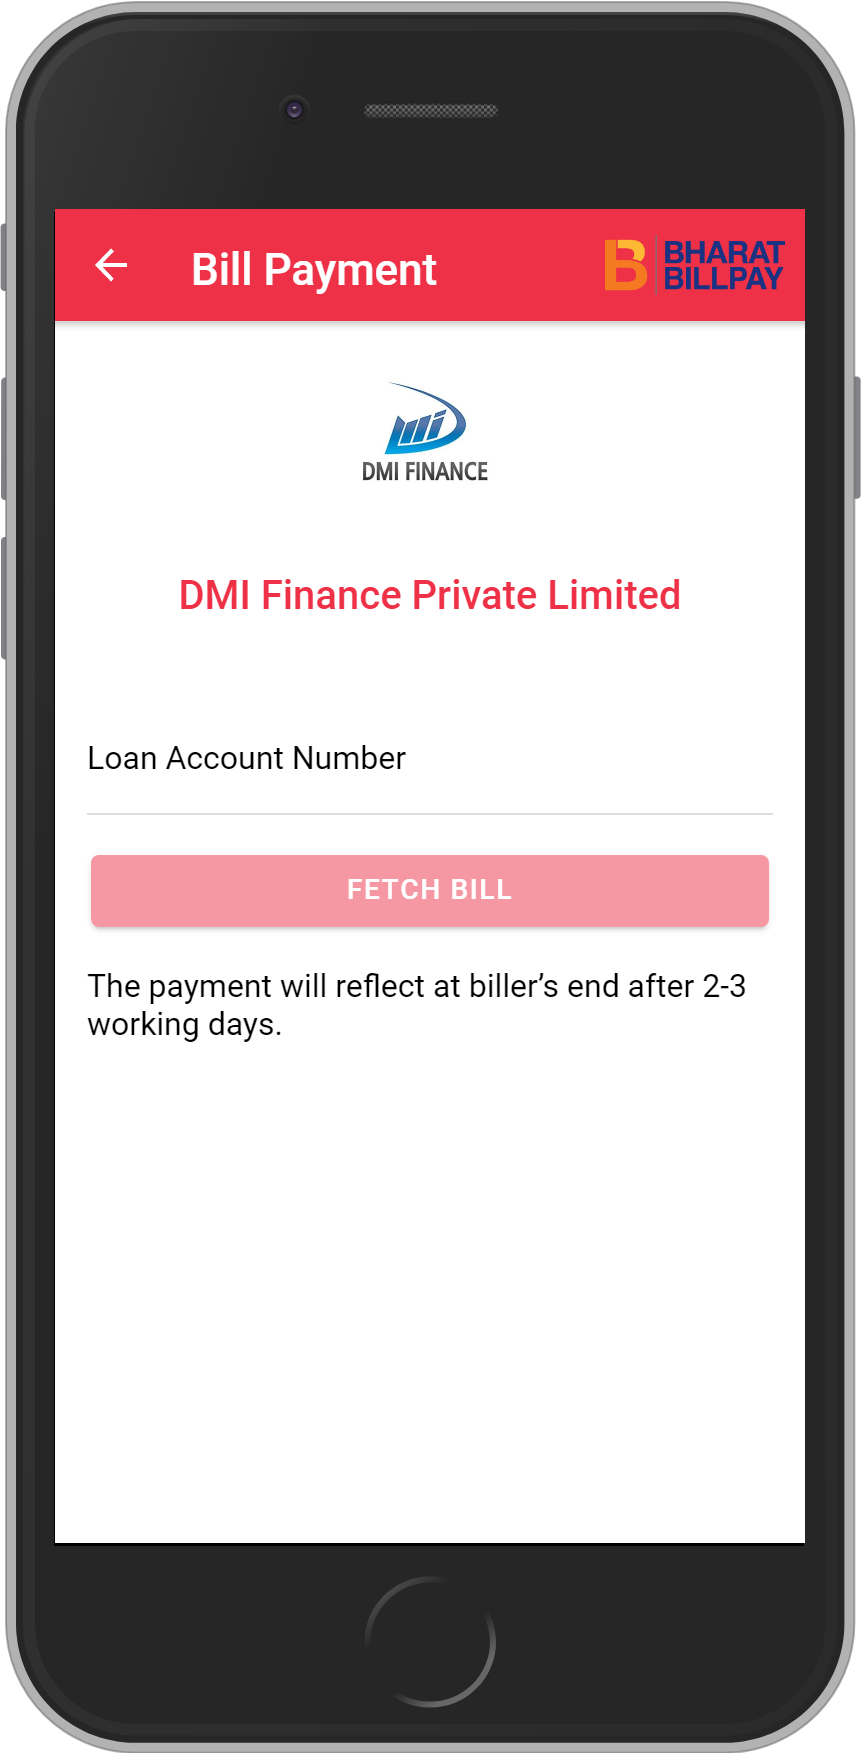 Get UNLIMITED <b>0.1%</b> CASHBACK on DMI Finance Private Limited Loan Payment.